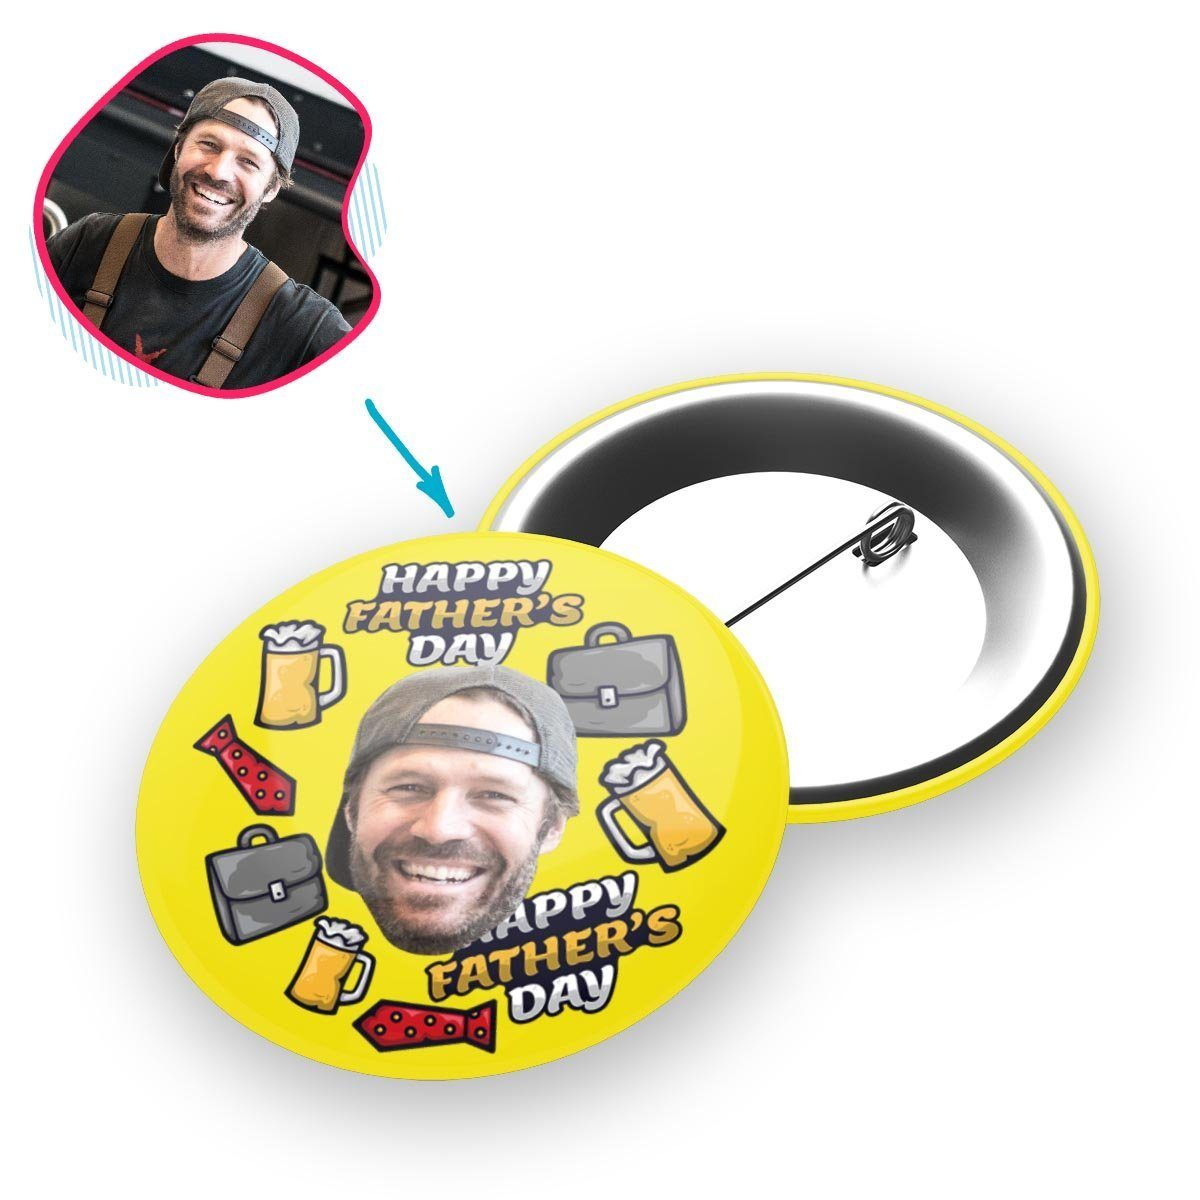 Yellow Fathers Day personalized pin with photo of face printed on it